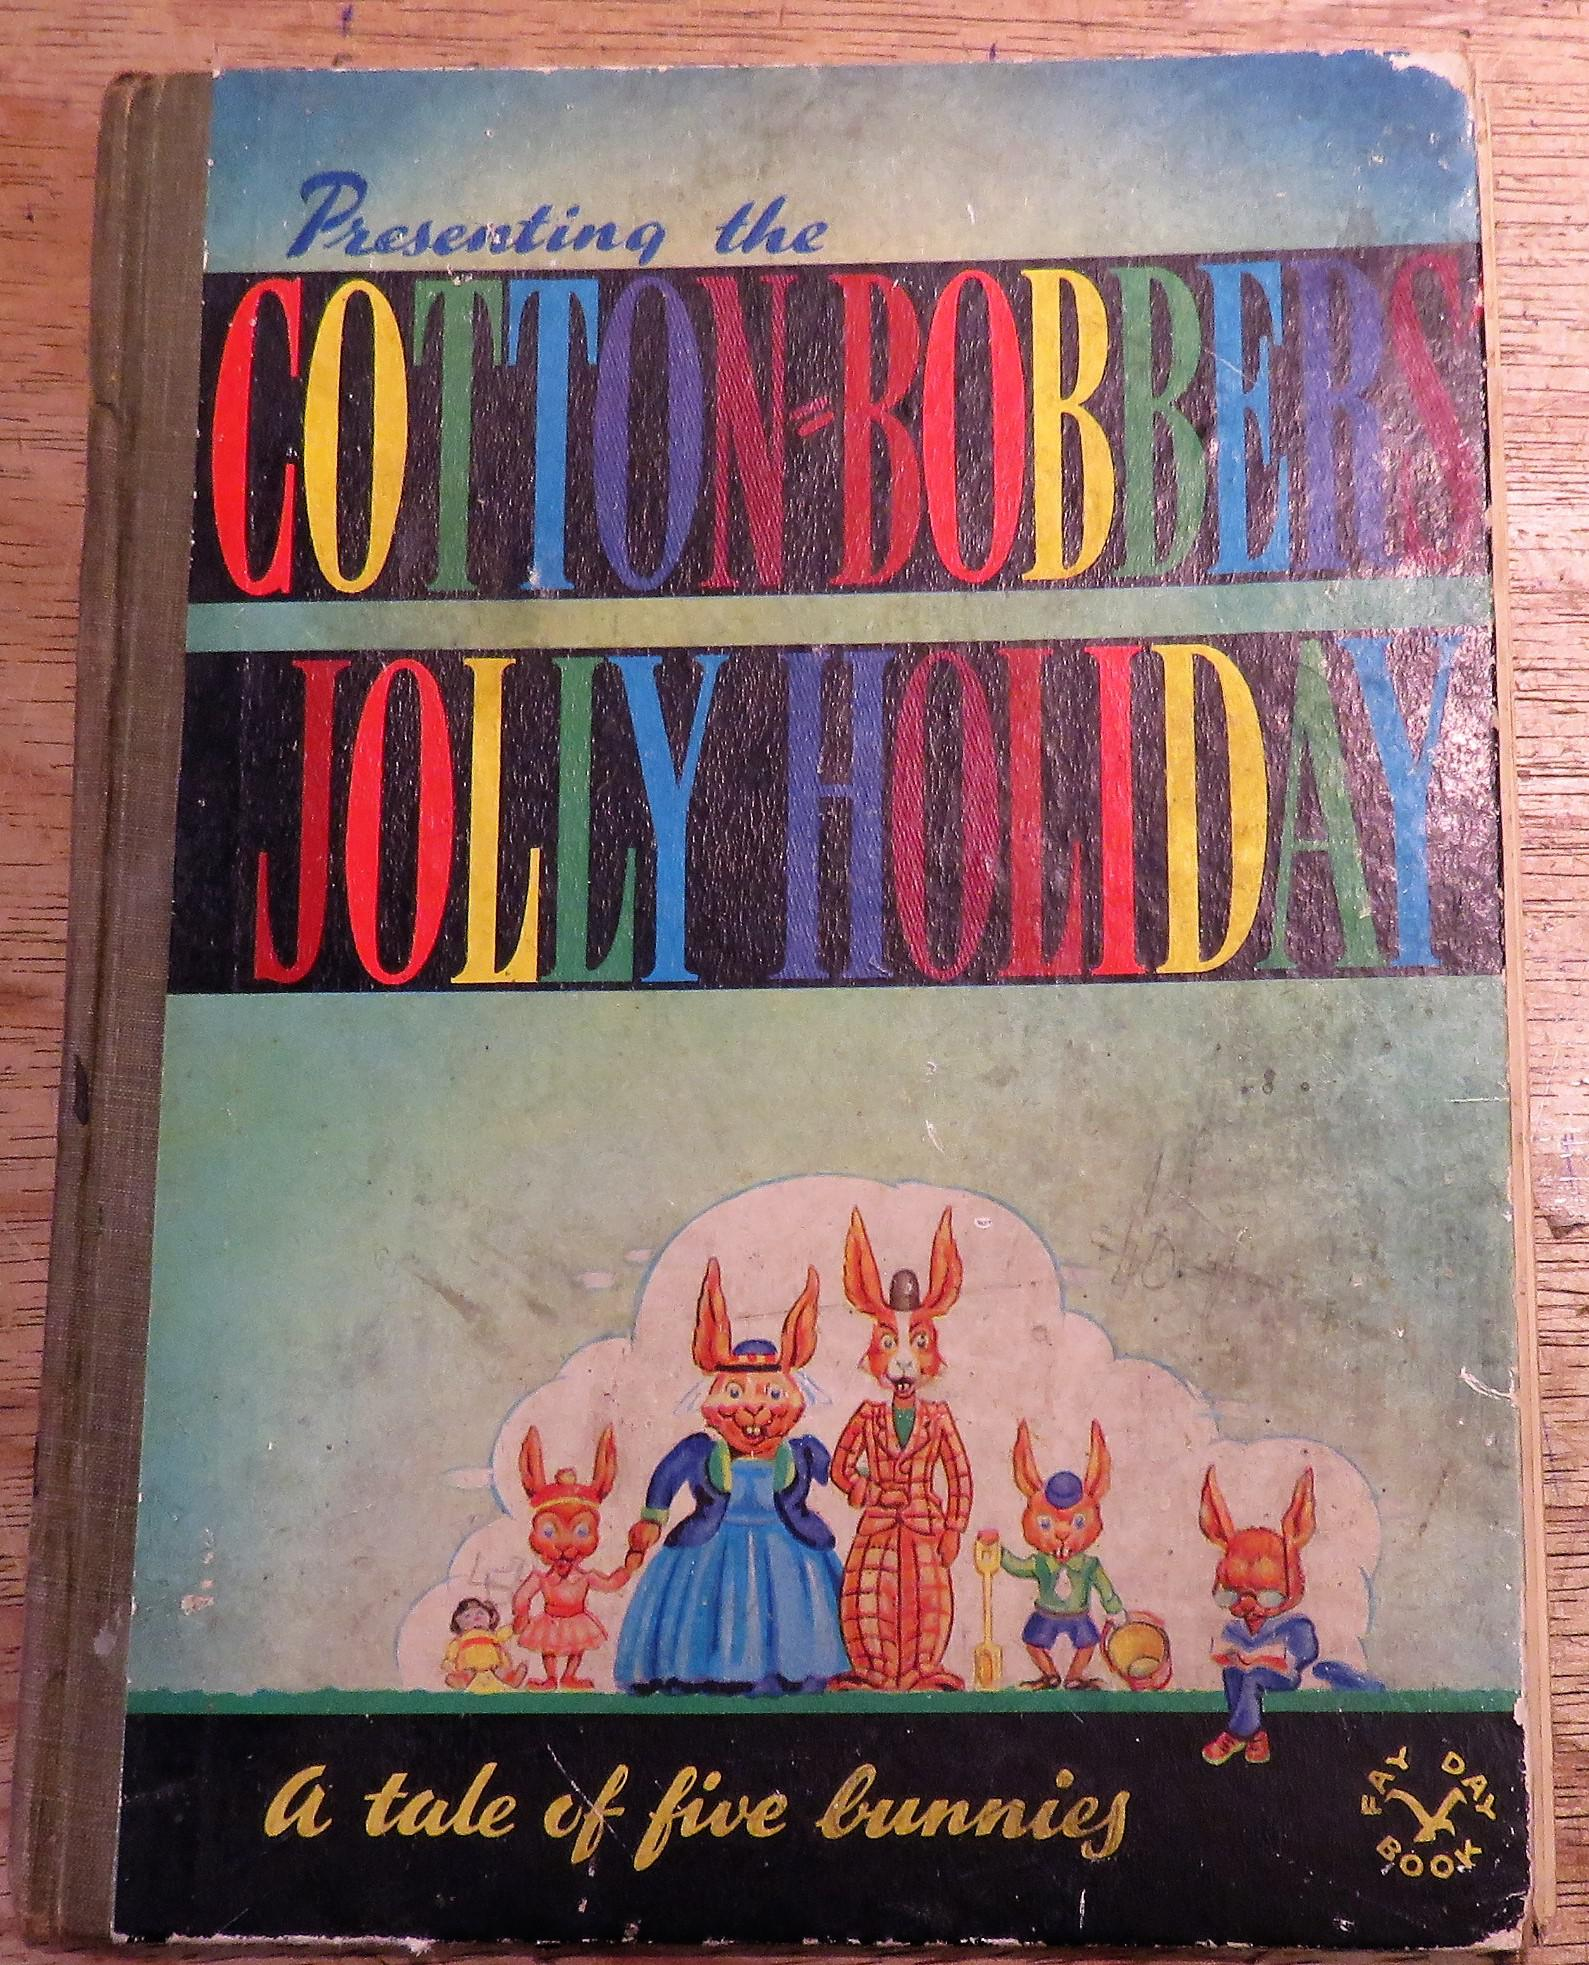 The Cotton Bobbers Jolly Holiday